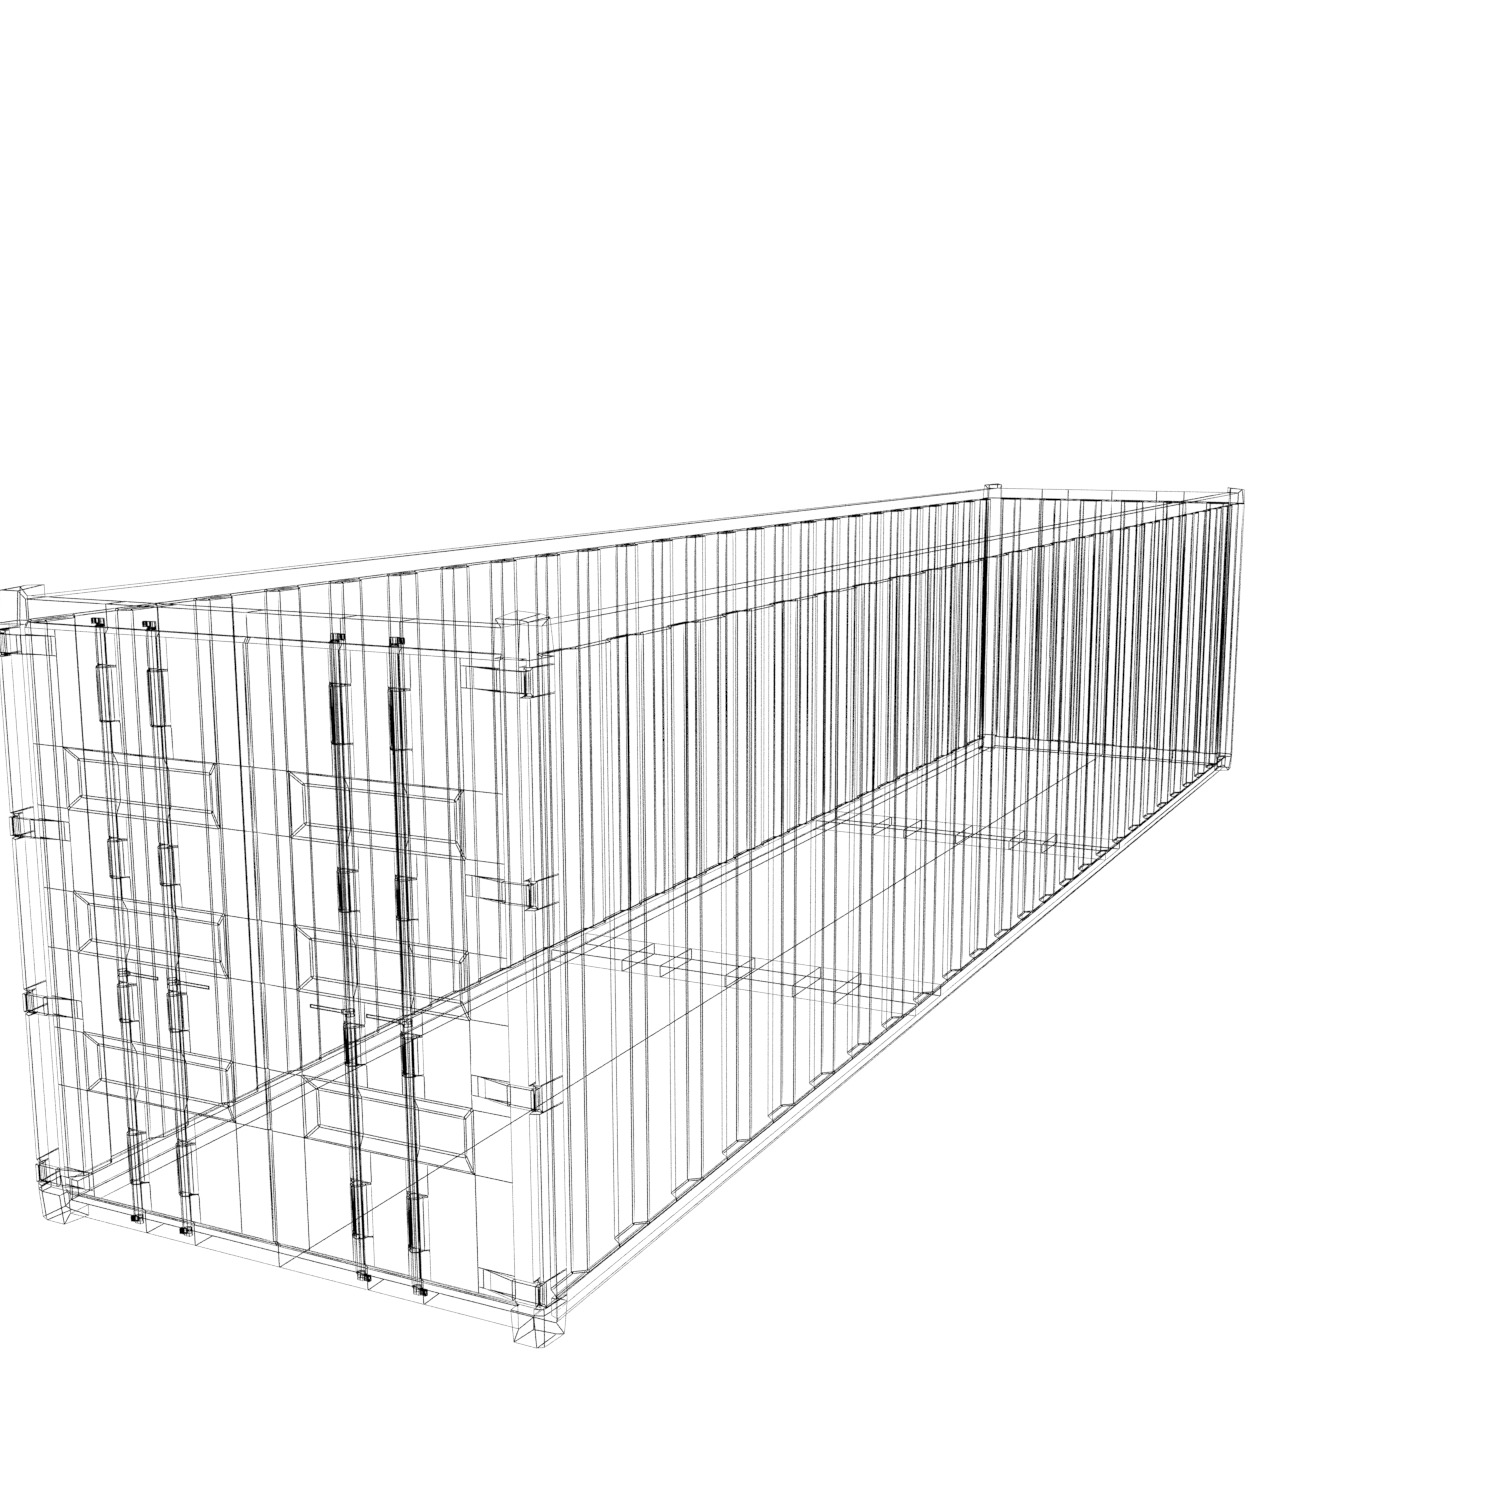 40 ft sea container free 3d model game ready  max  obj